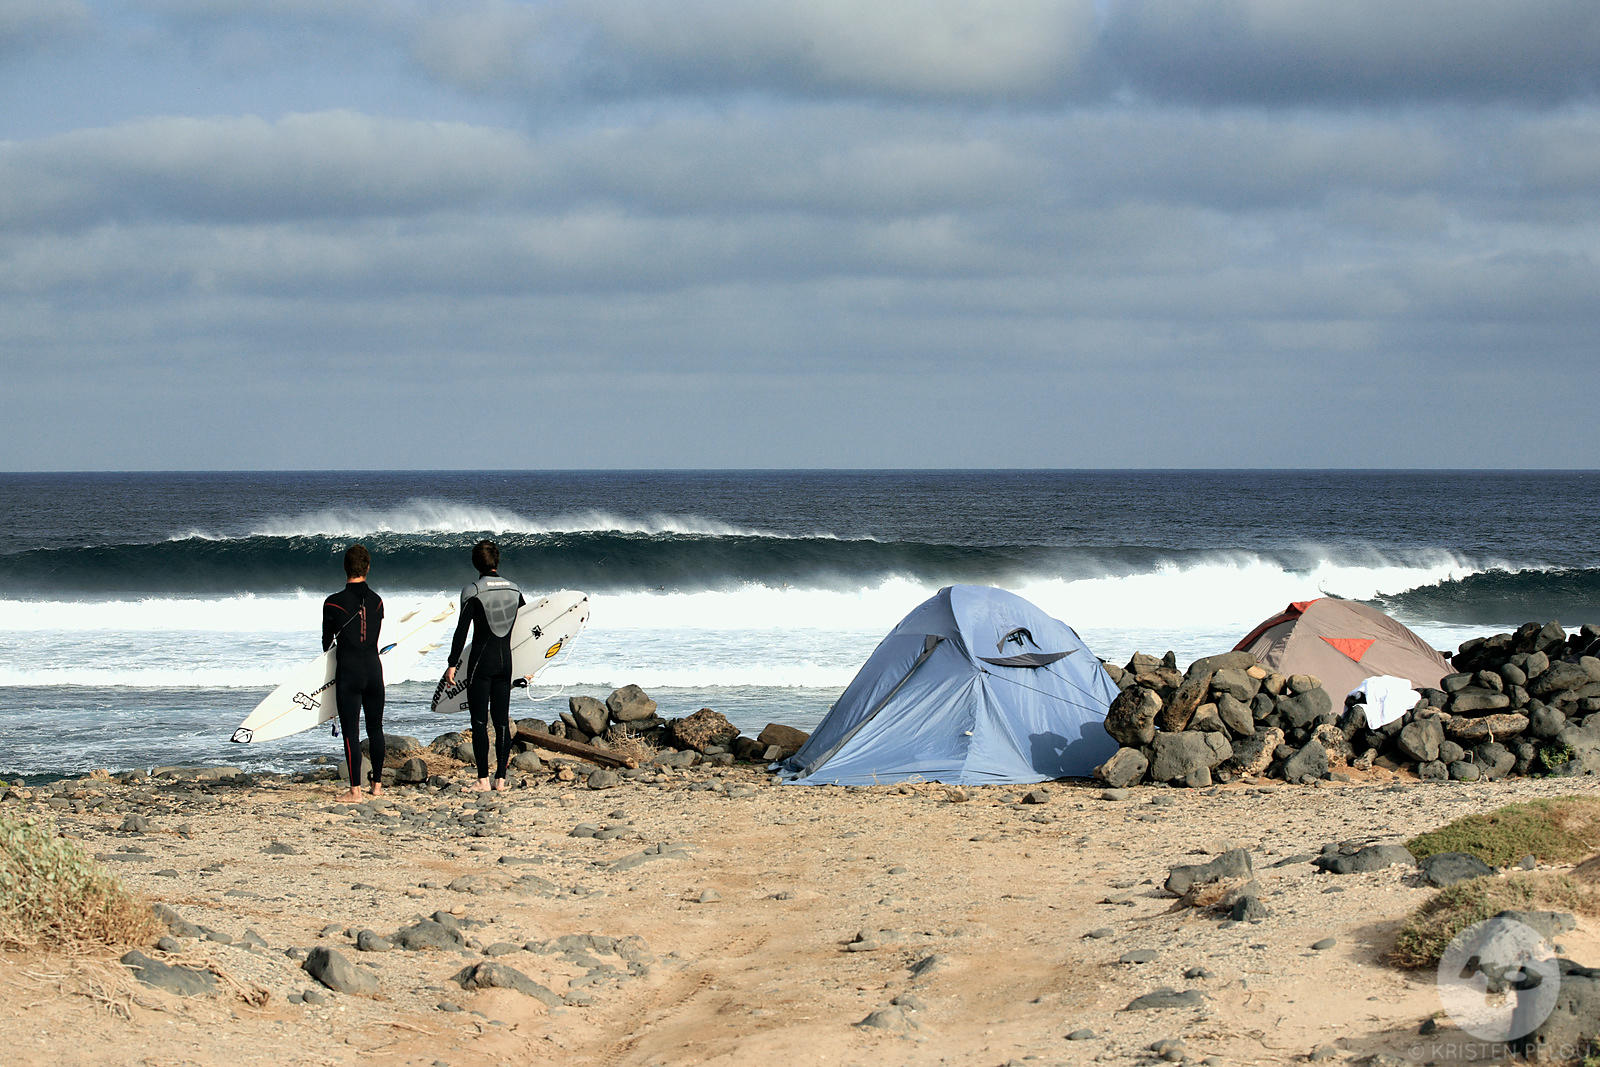 Two surfers watching a  wave breaking in front of a unauthorized campsite, La Graciosa island, Canary islands, Spain, march 2...